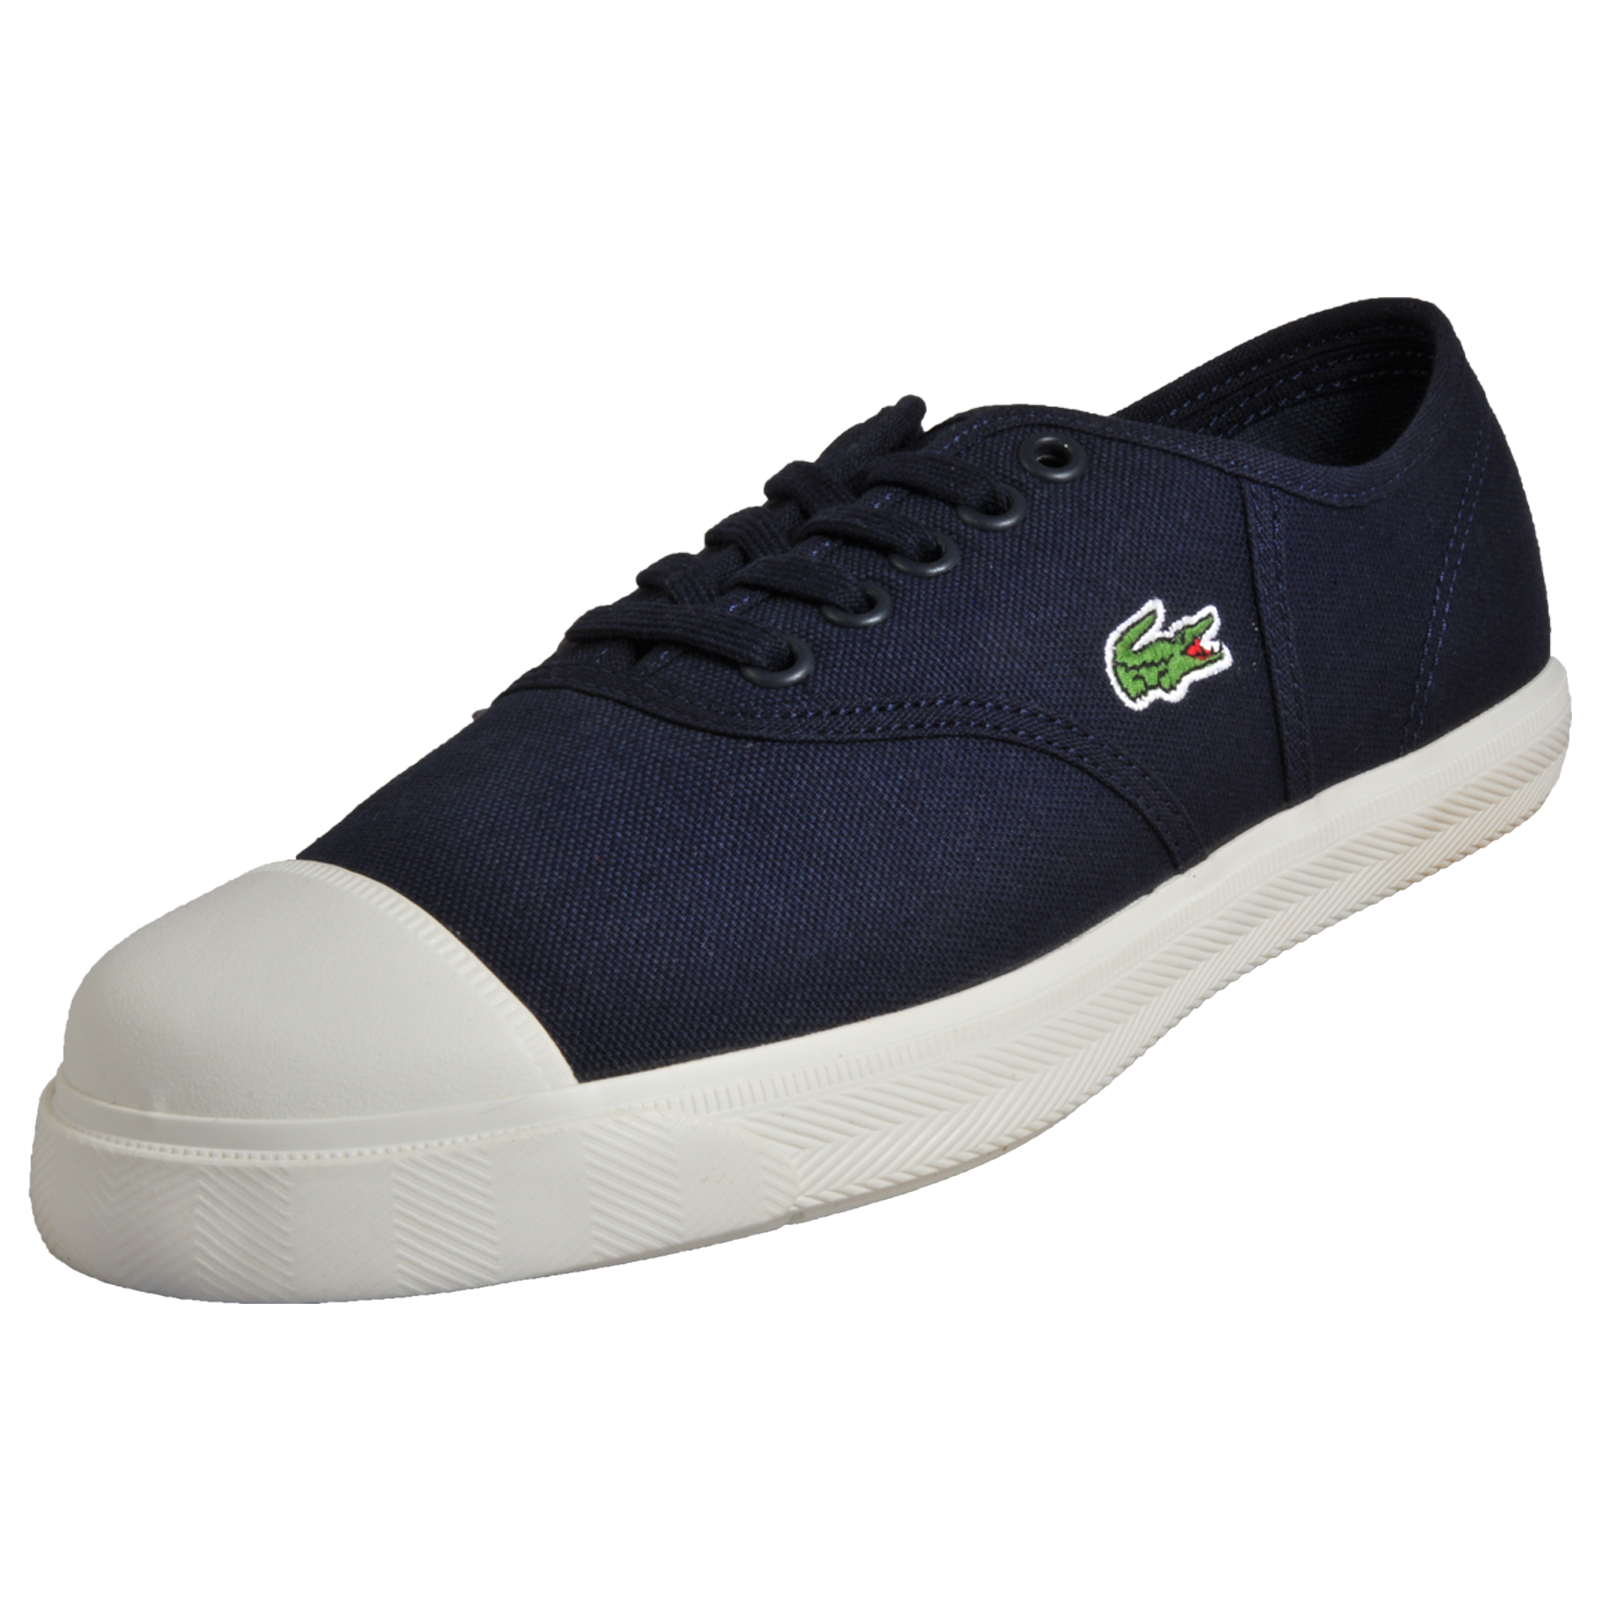 0e1bcb538924 Details about Lacoste Rene 117 Womens Classic Casual Designer Plimsol  Trainers Navy B Grade